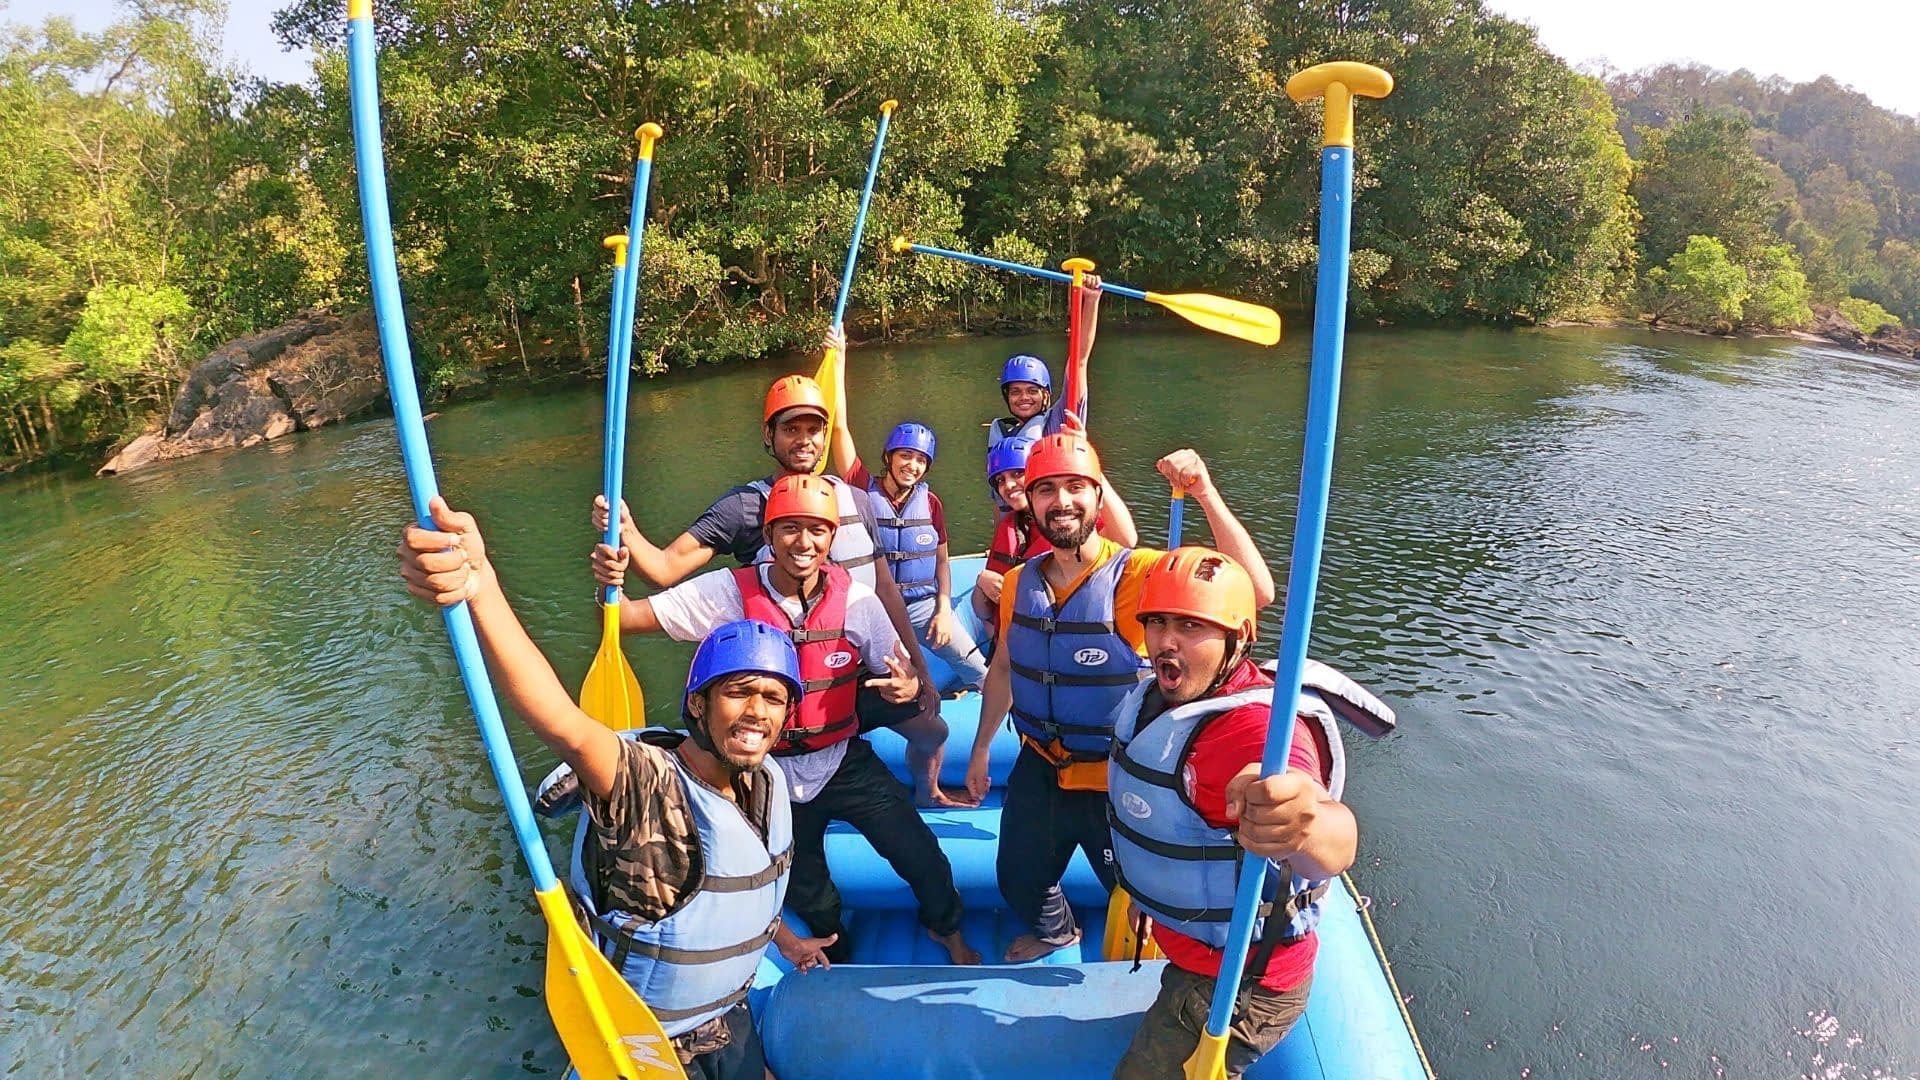 Dandeli - Plan The Unplanned Corporate Outing